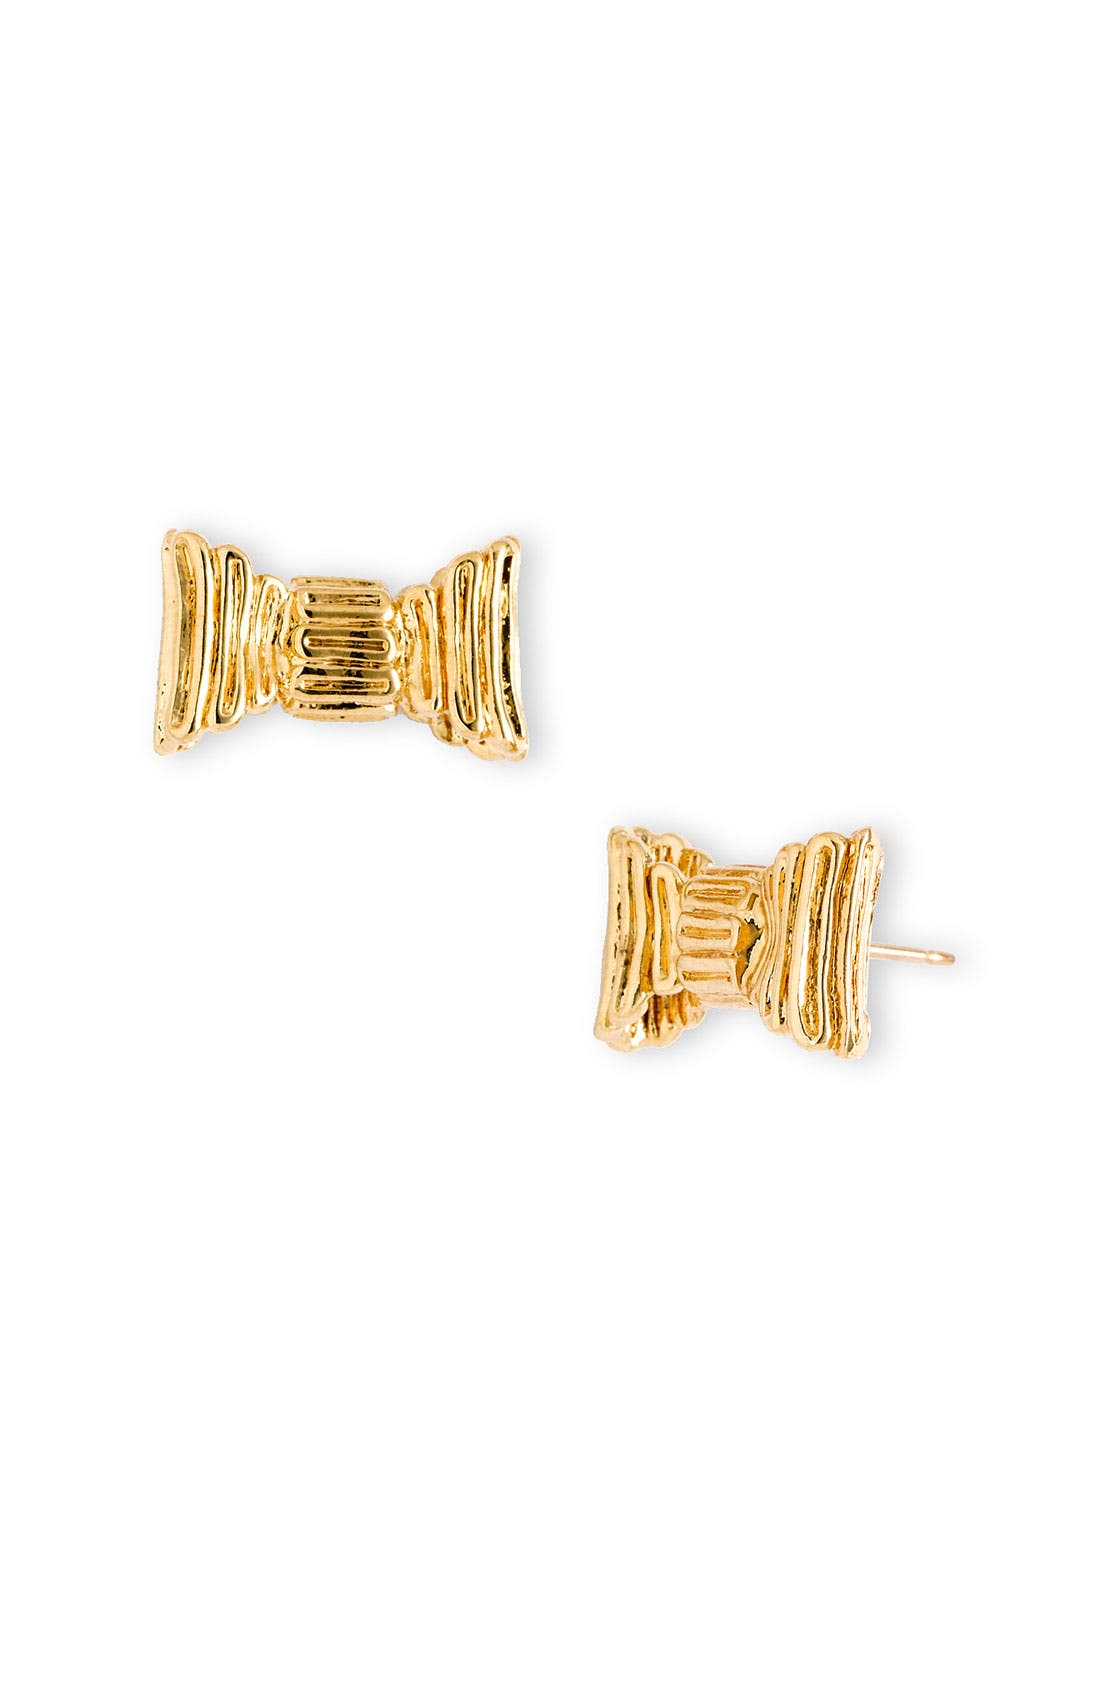 Main Image - kate spade new york 'all wrapped up' bow stud earrings